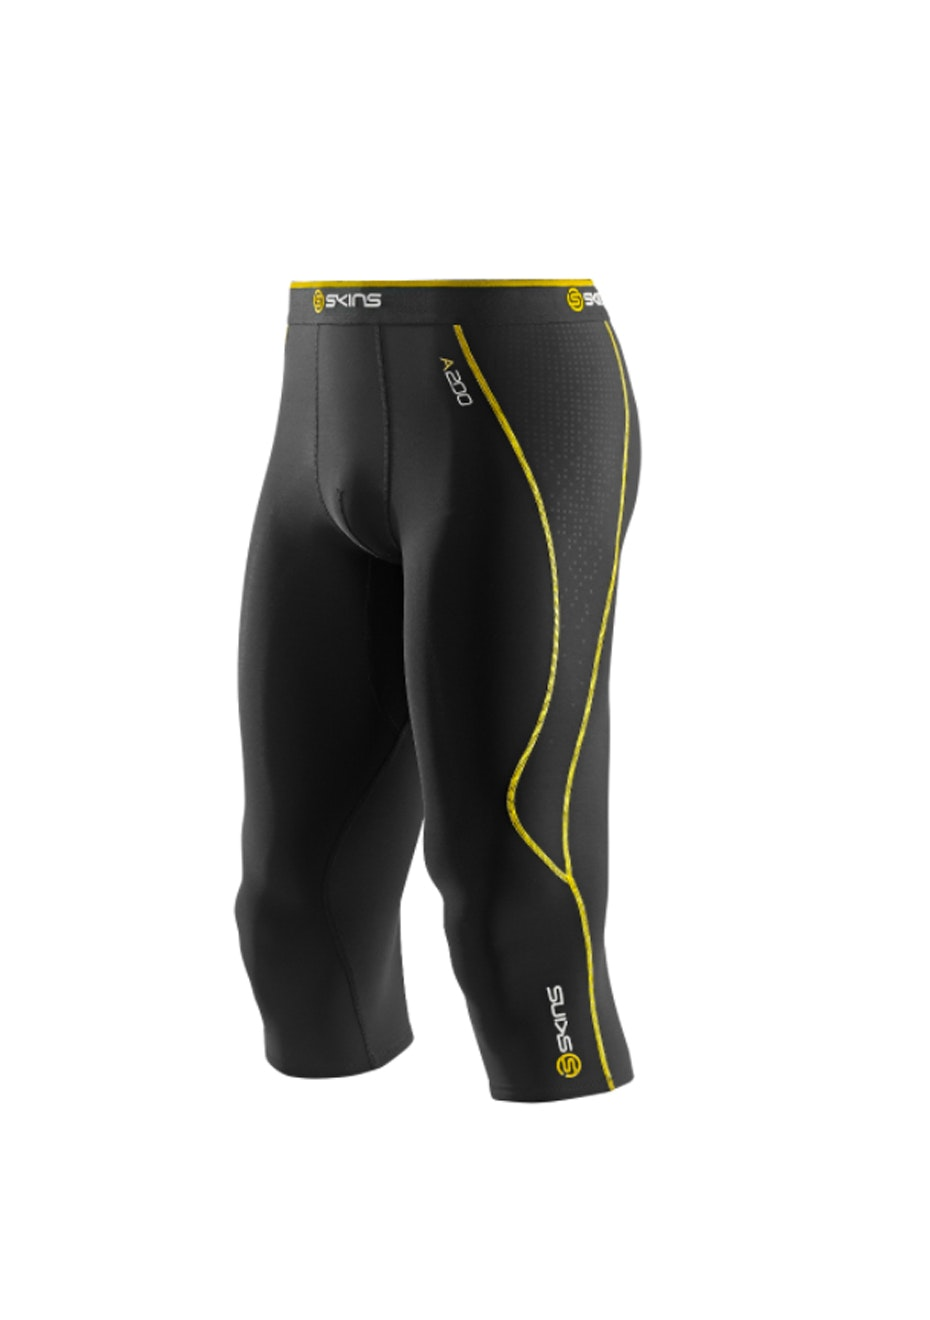 Skins -  A200 Bk/Yellow Thera 3/4 Tight - Mens